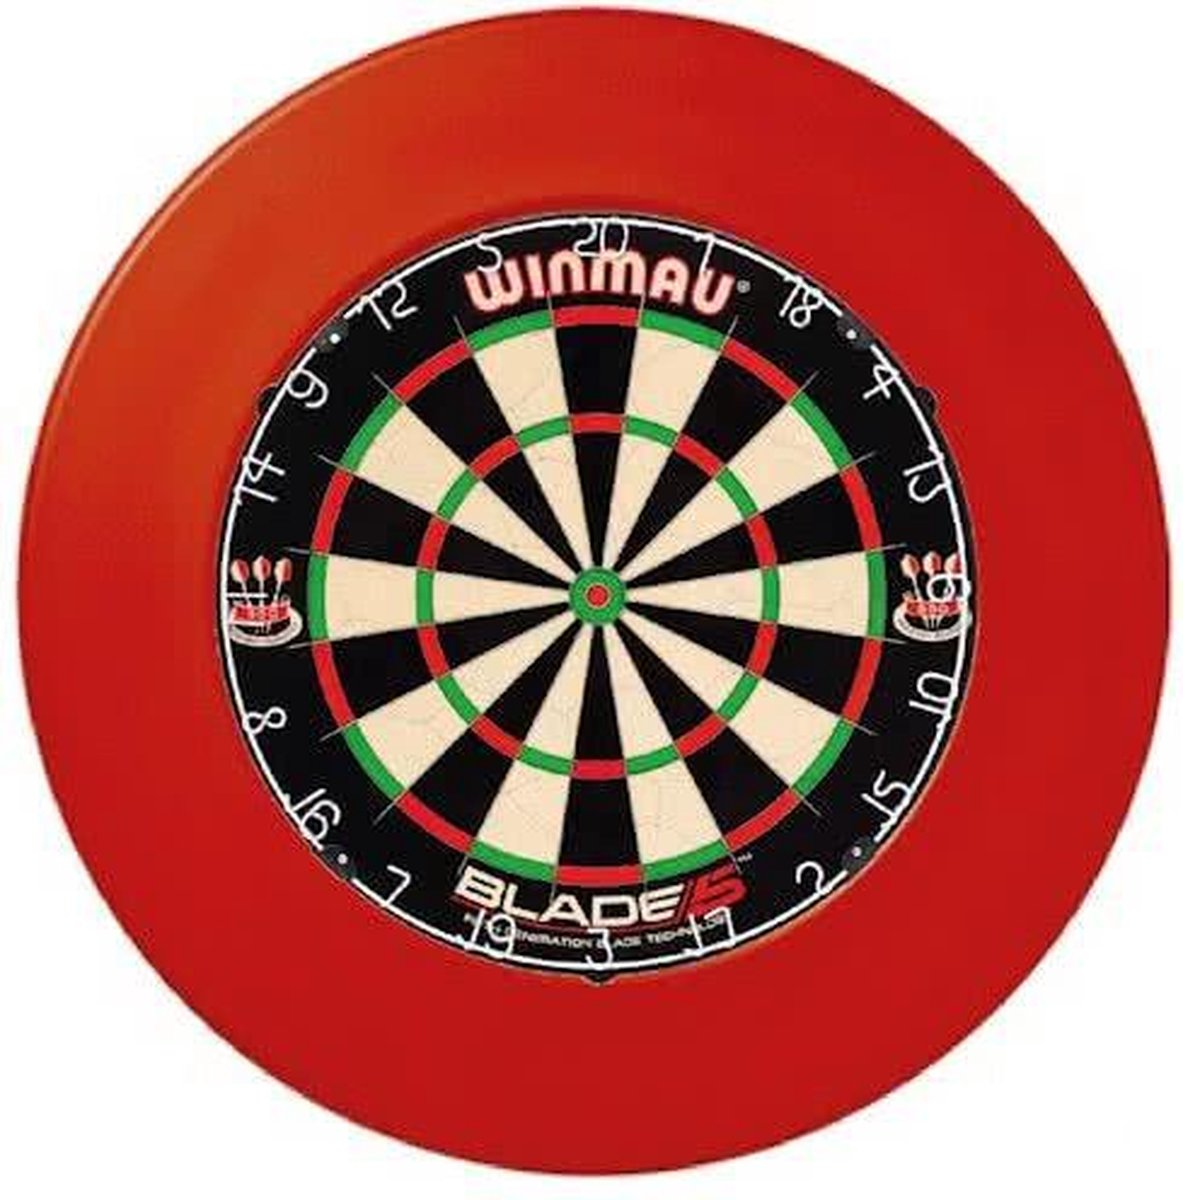 winmau blade 5 incl. rubberen surround ring rood en scorebord